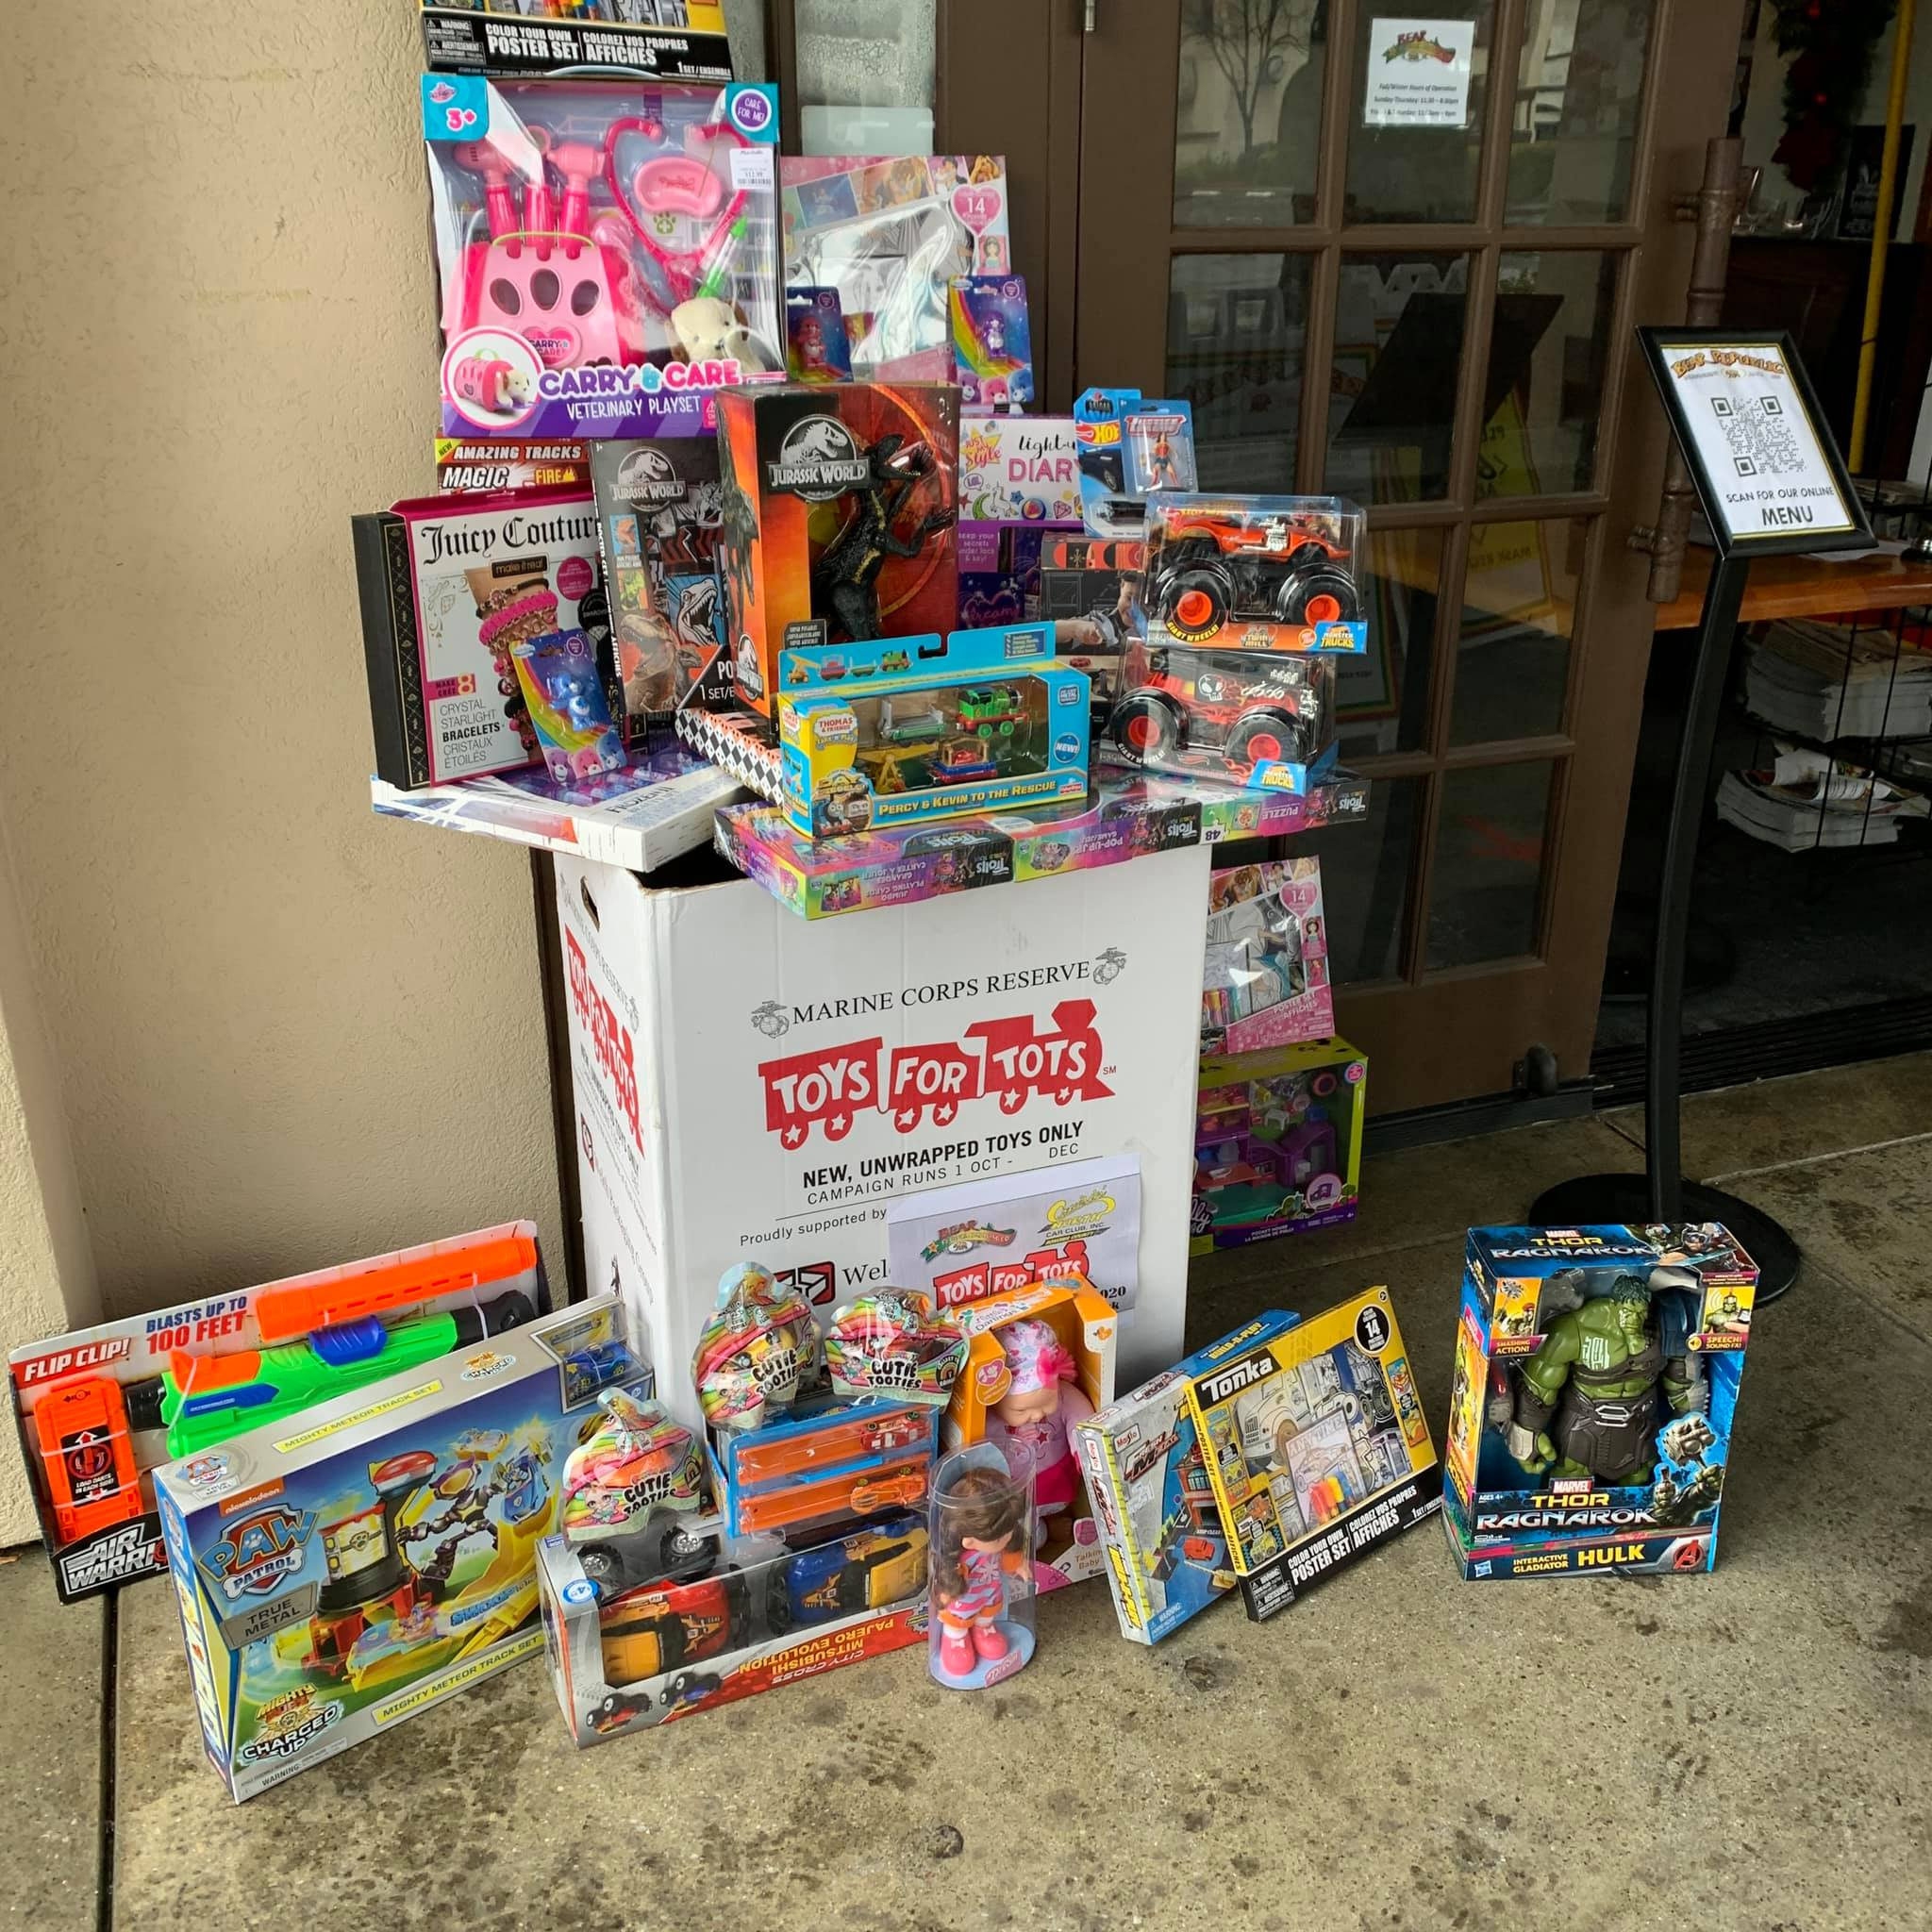 Cruisin' North Toys 4 Tots Pictures December 2020